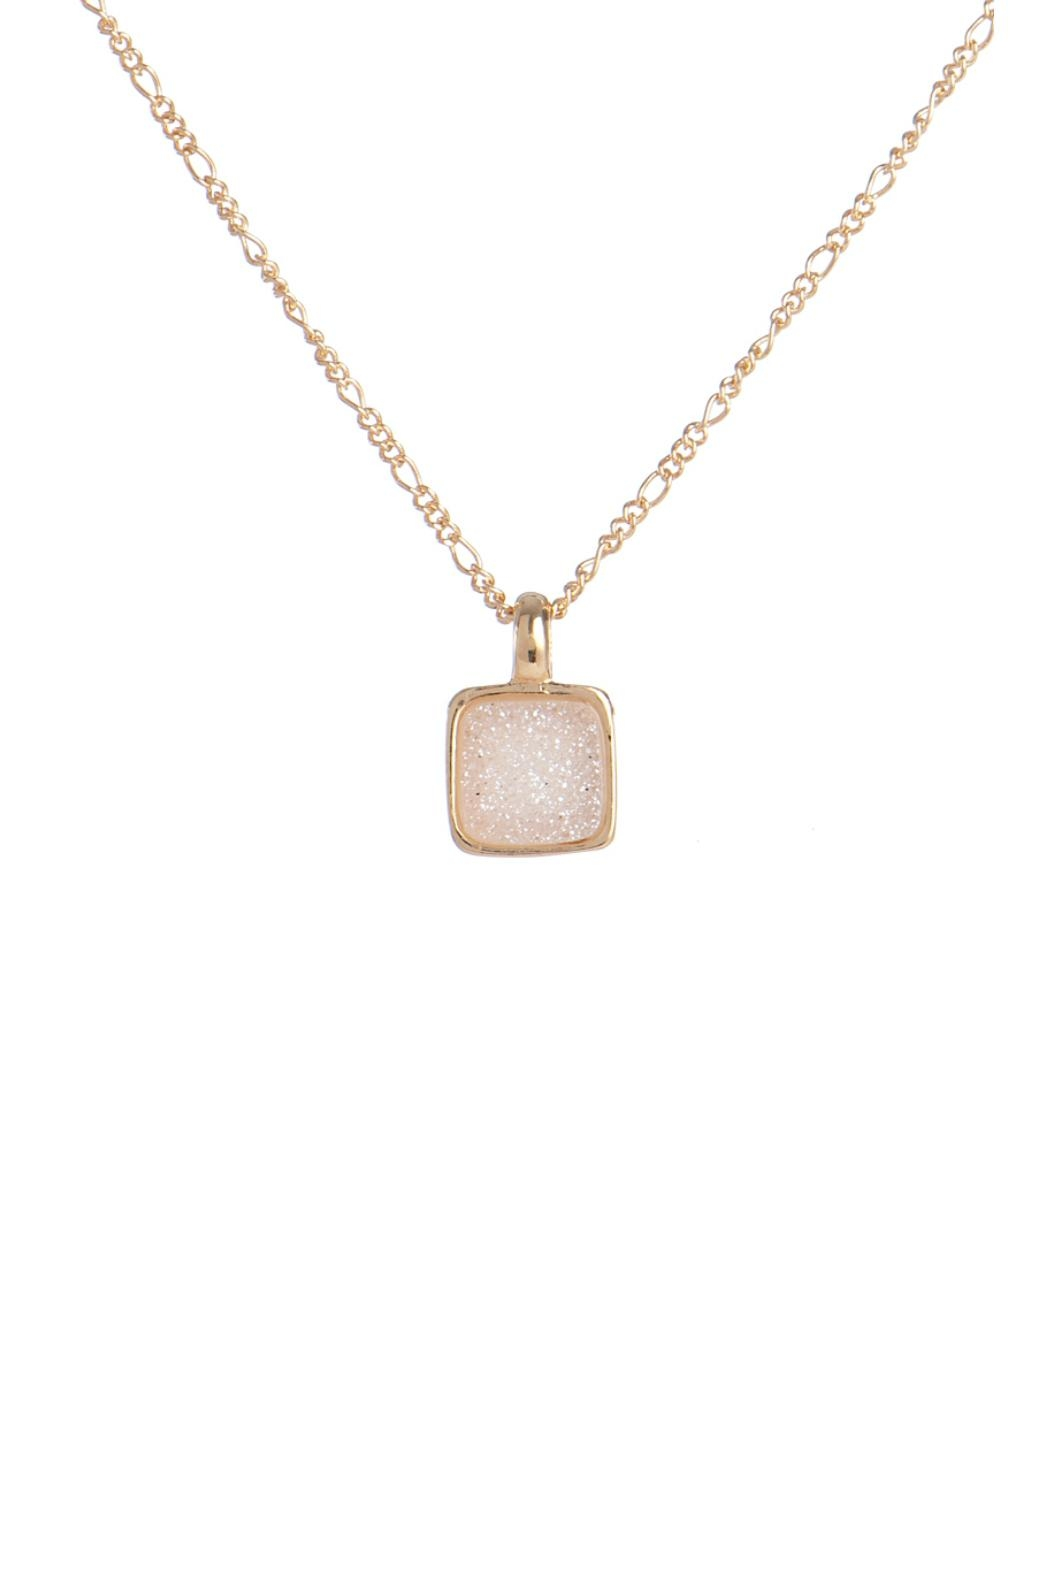 Marcia Moran Pink Druzy Necklace - Front Cropped Image